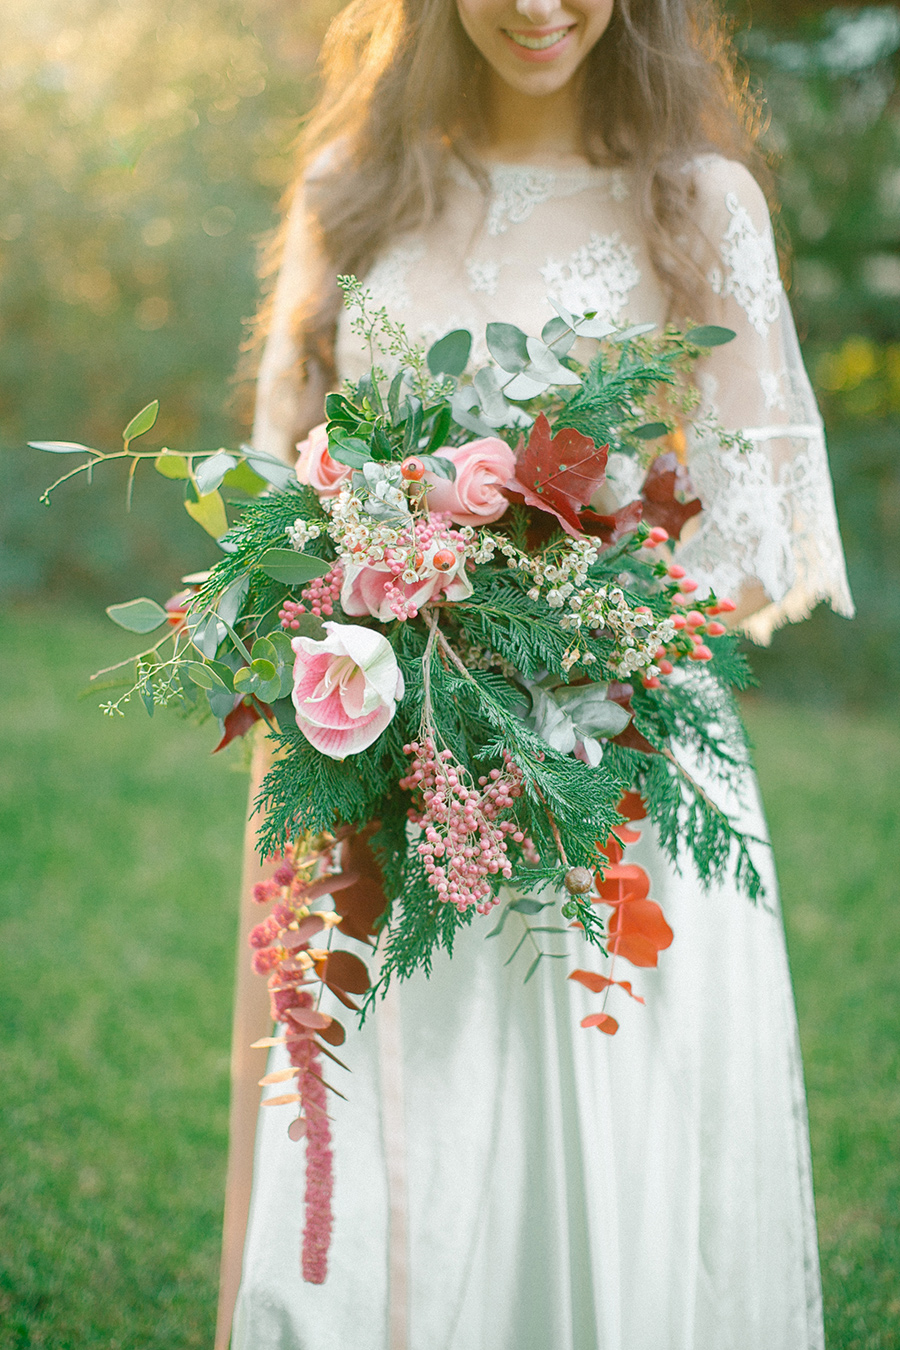 Gorgeous Boho Chic Wedding Bouquet with blush pink roses, white hyacinths and red eucalyptus leaves / florals by Studio 7 / photo by Anna Roussos Photography